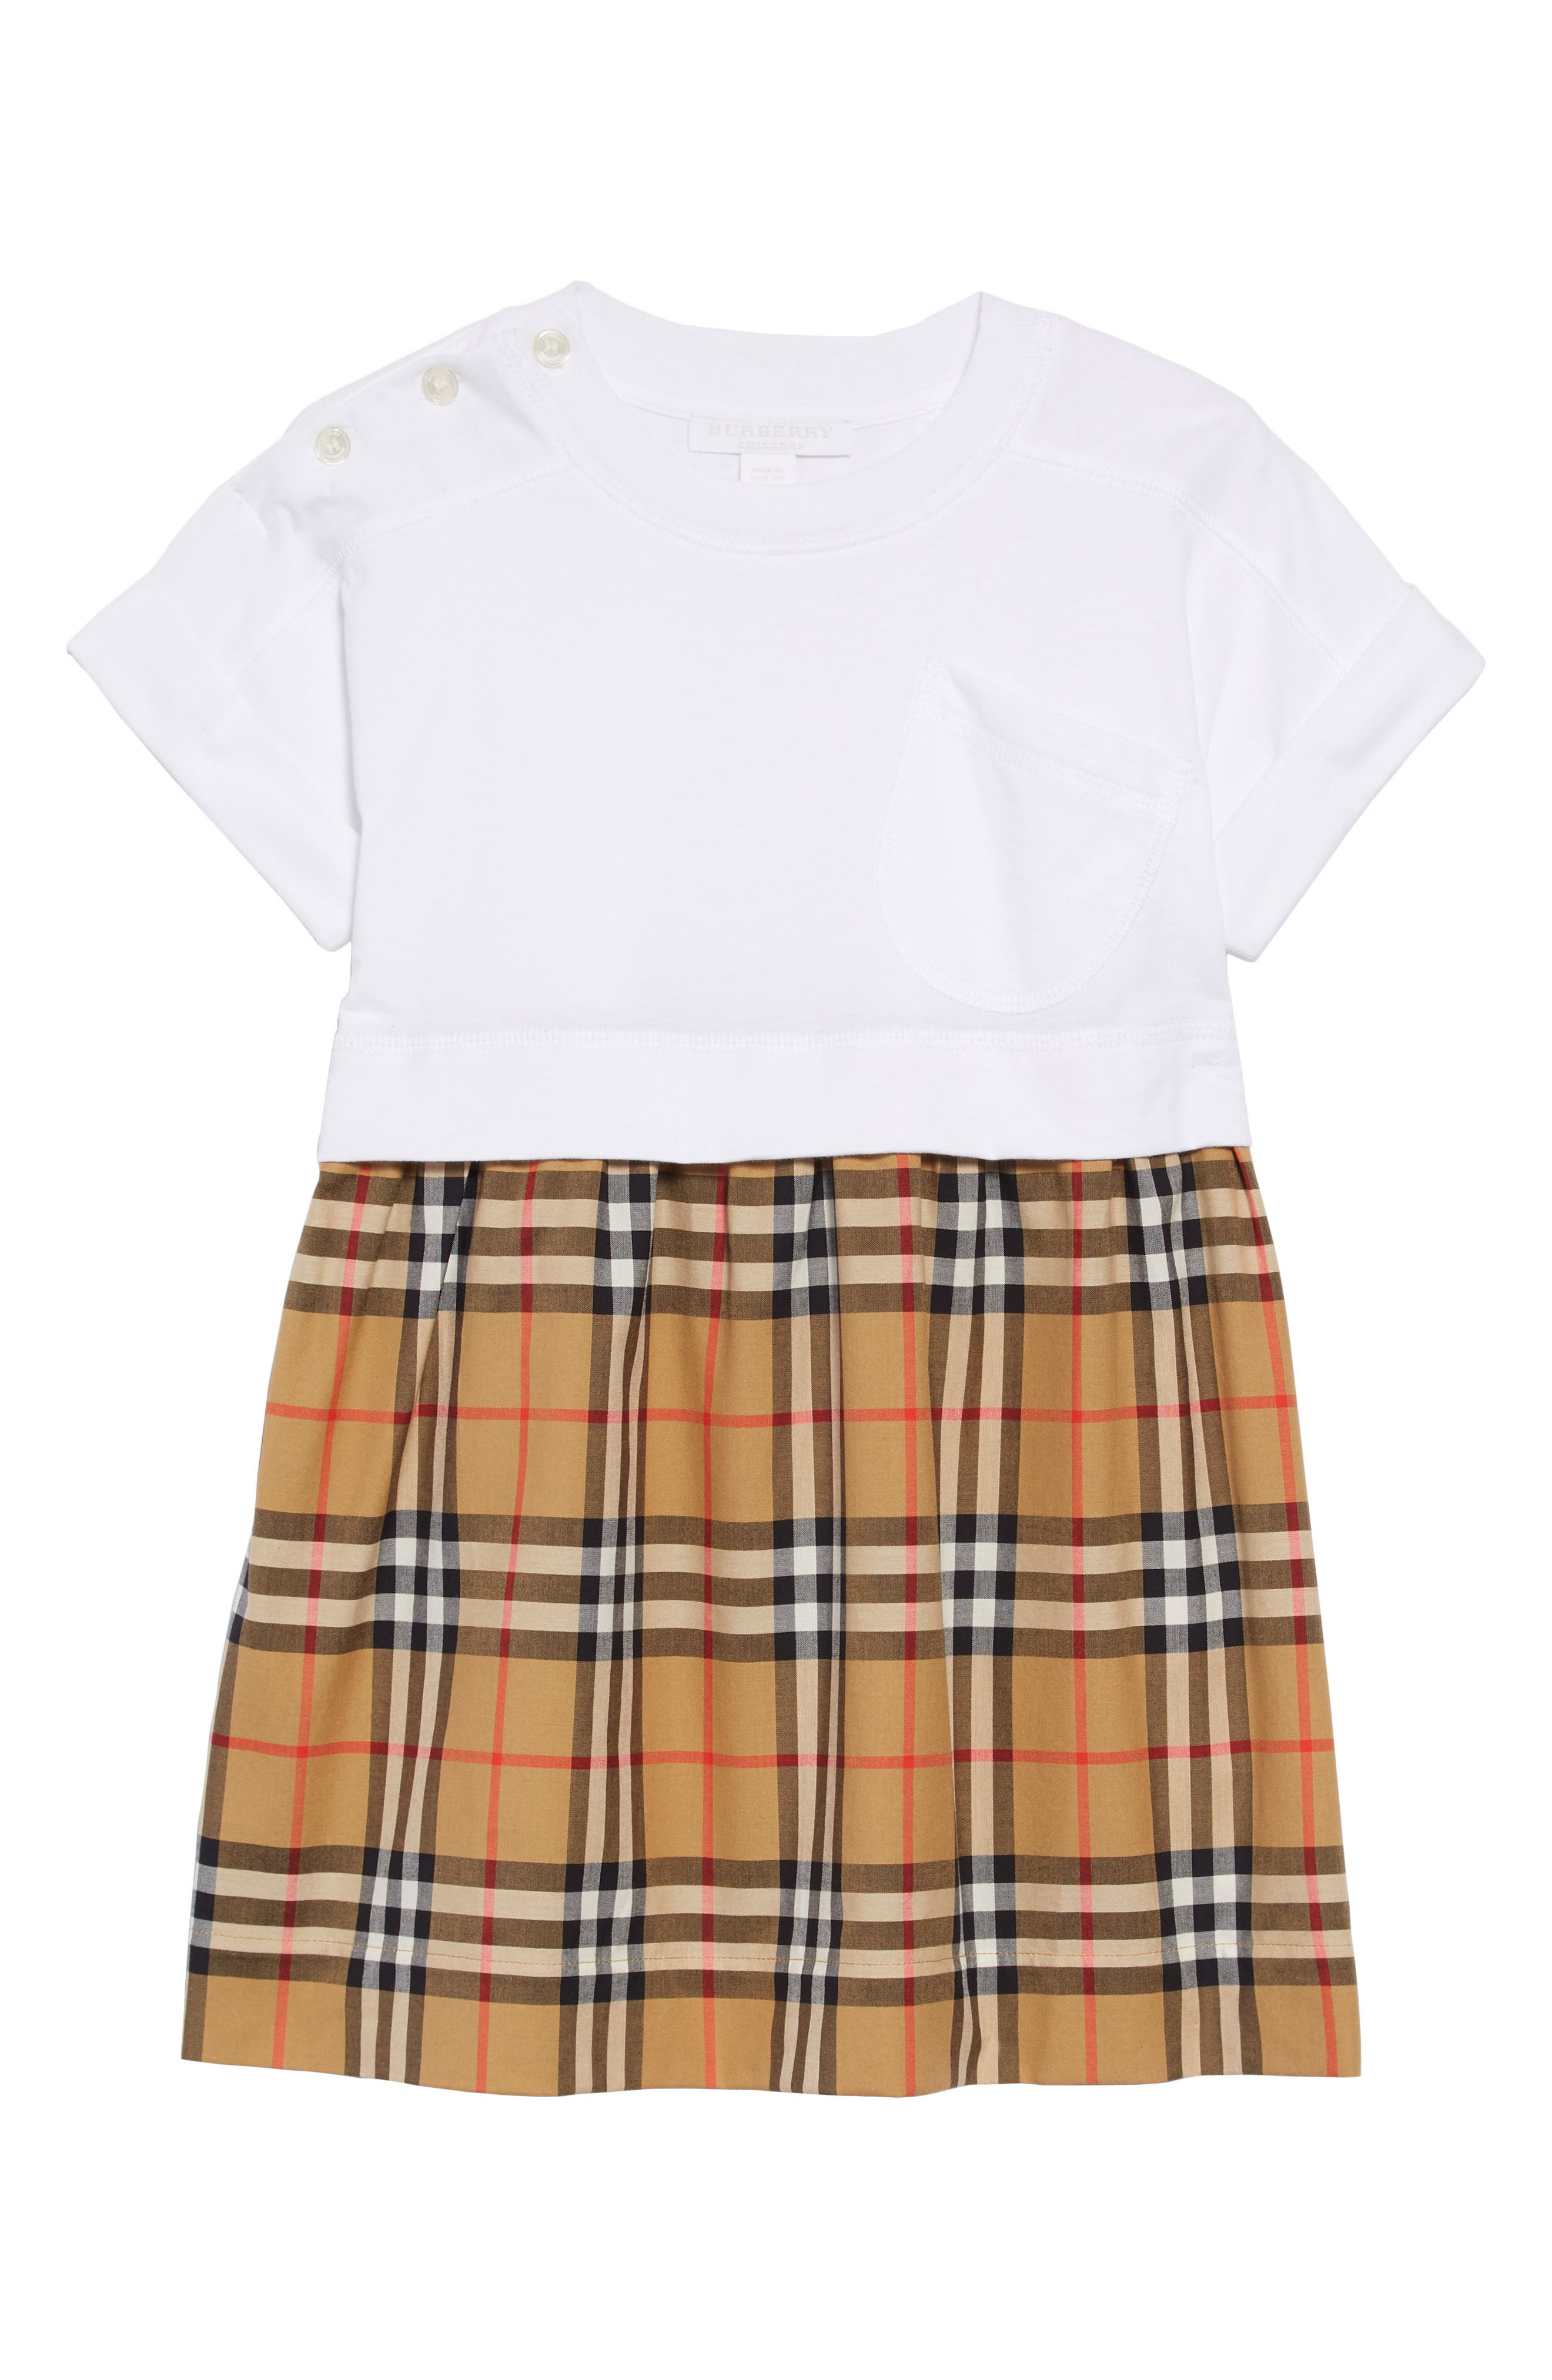 BURBERRY,                             Vintage Check Popover Dress,                             Main thumbnail 1, color,                             WHITE